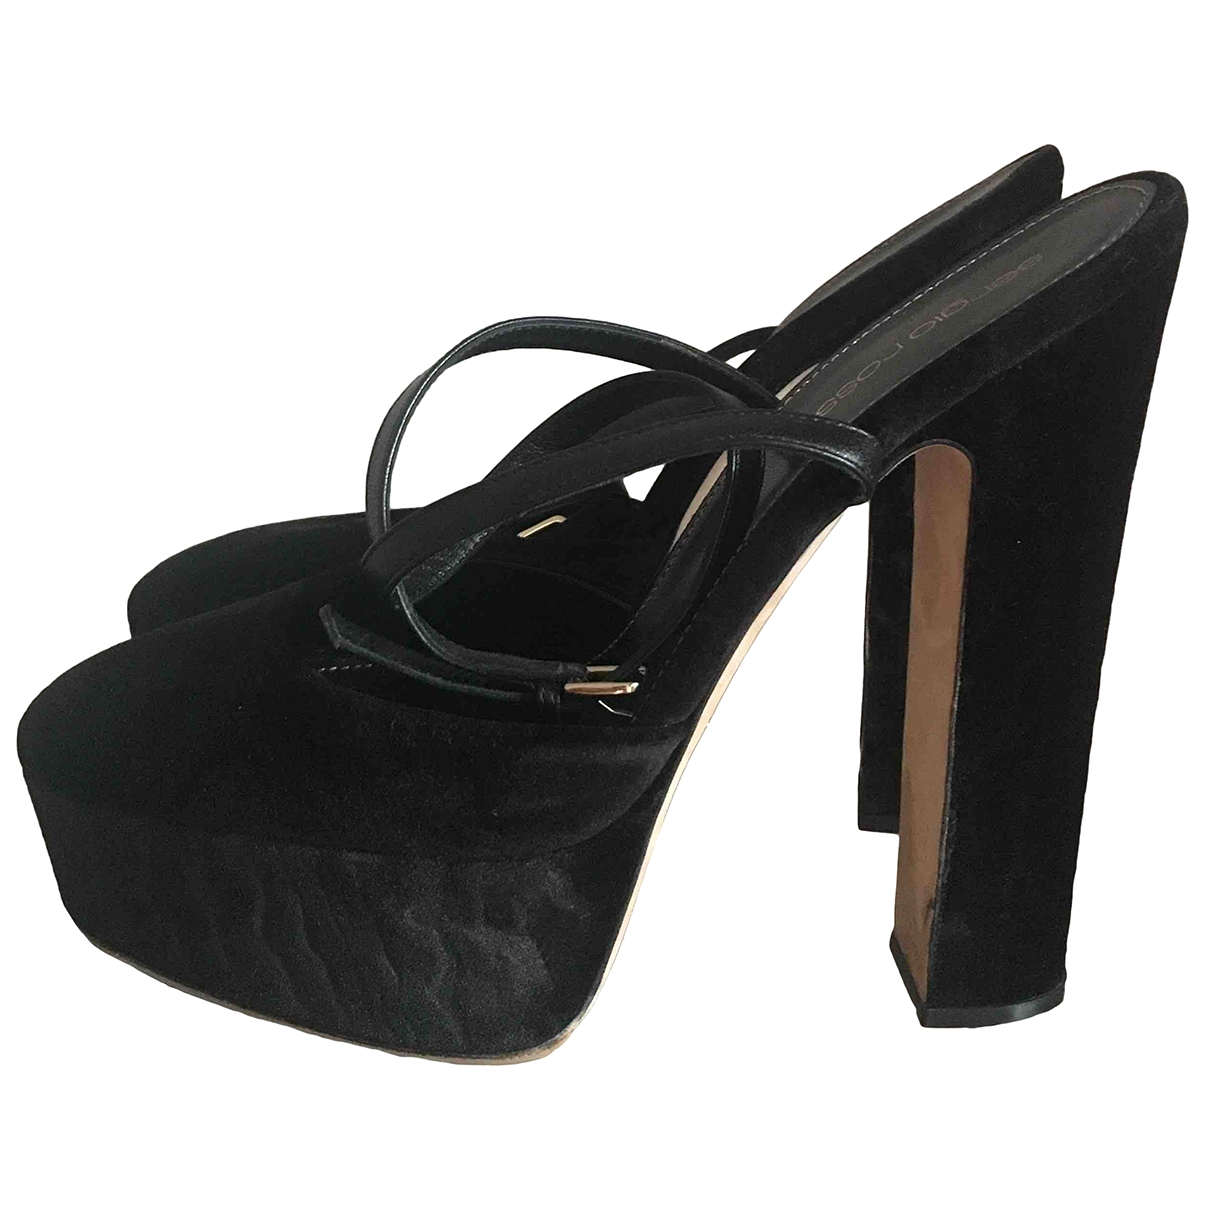 Sergio Rossi \N Black Suede Sandals for Women 38.5 EU